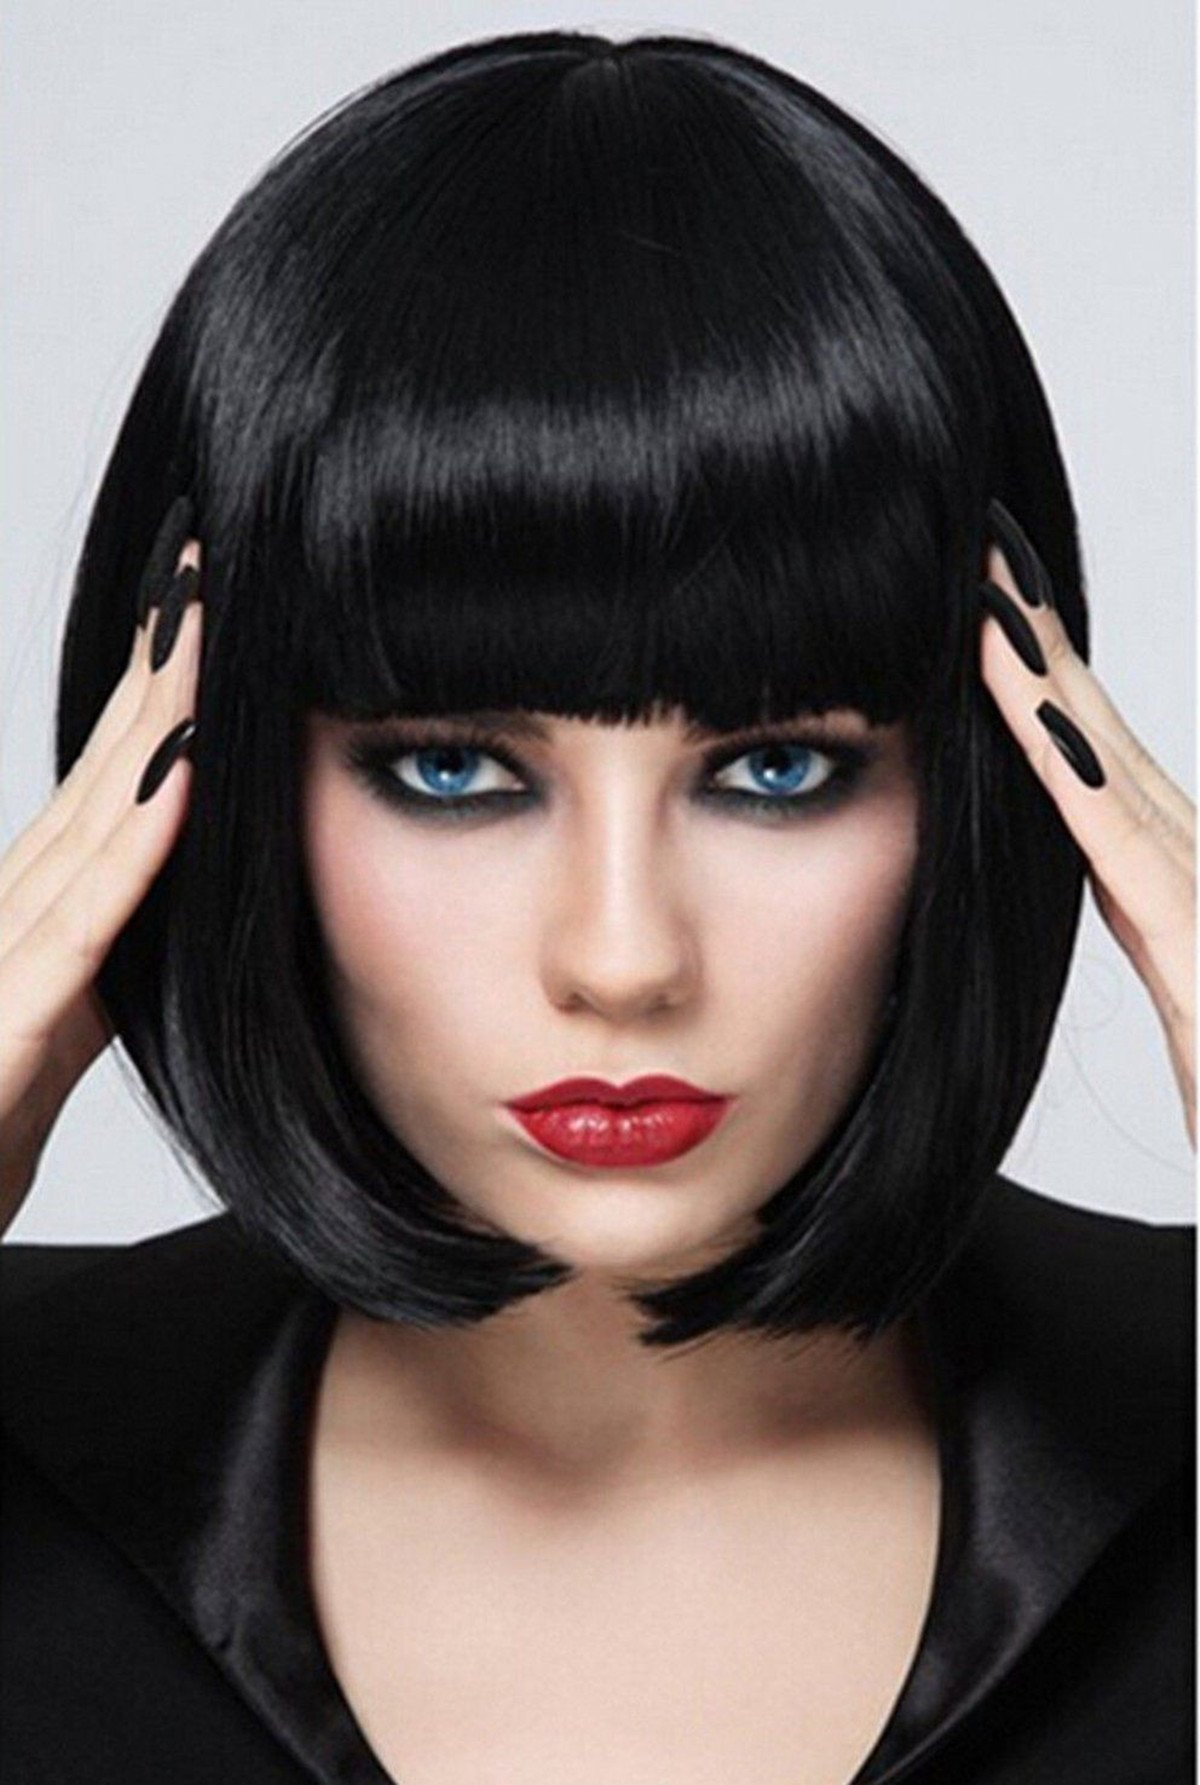 Short Bob Wigs Black Wig for Women with Bangs Straight Synthetic Wig Natural As Real Hair 12'' BU027BK by Bopocoko